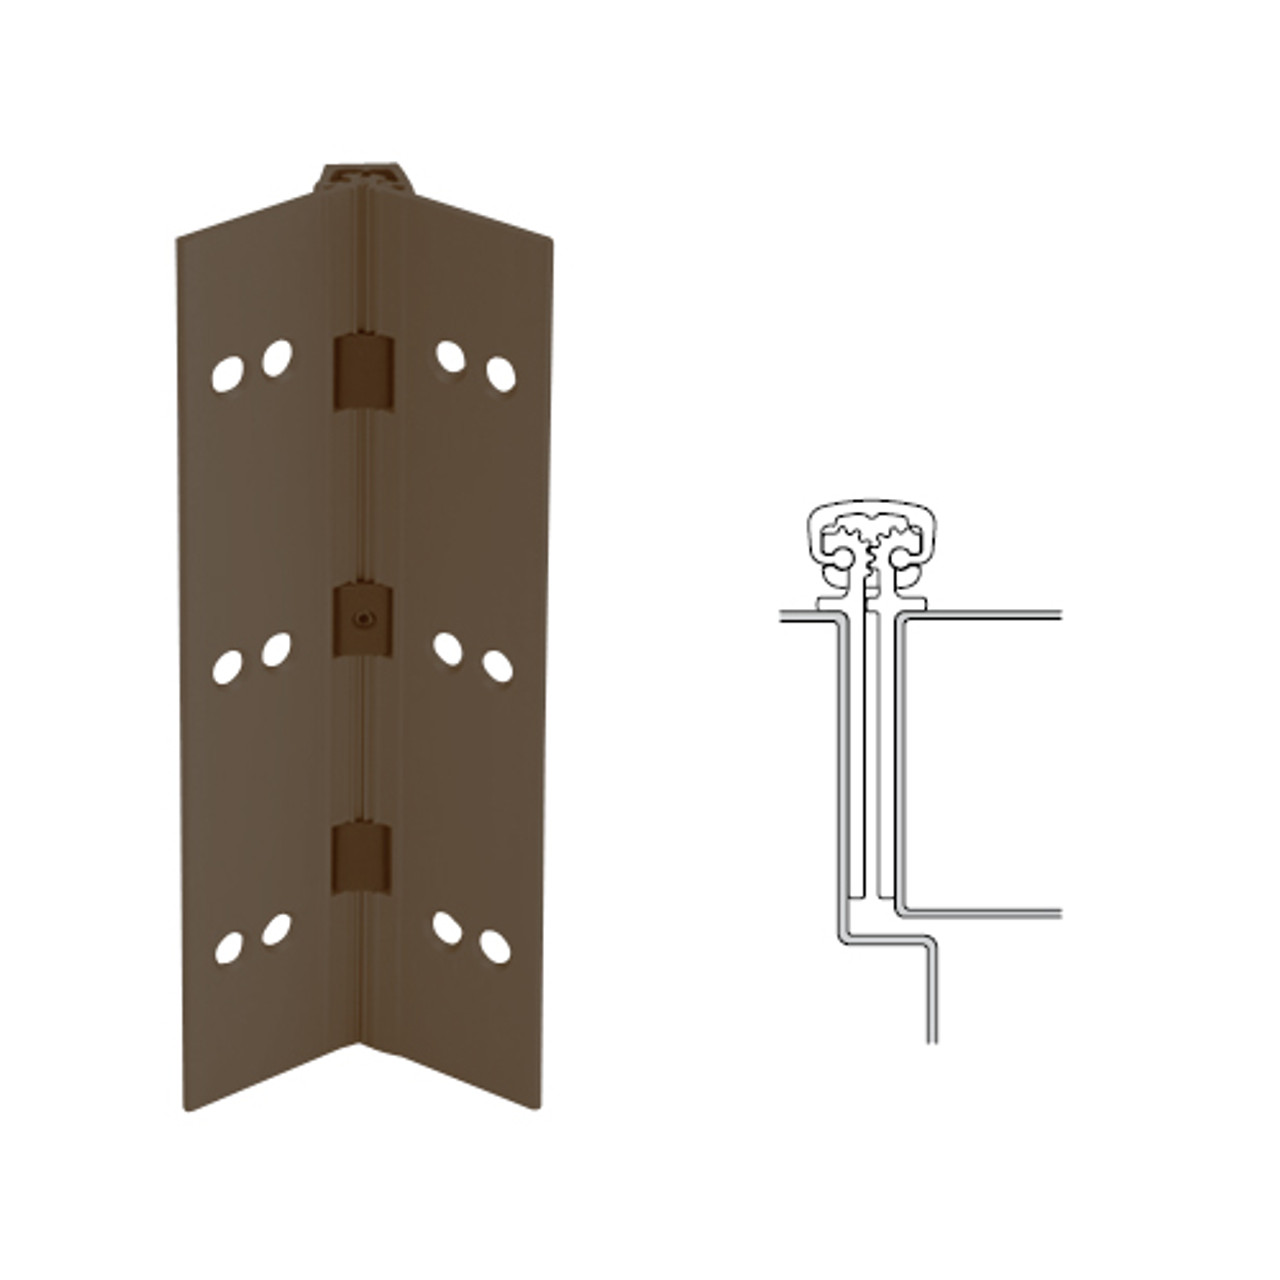 027XY-313AN-83-SECHM IVES Full Mortise Continuous Geared Hinges with Security Screws - Hex Pin Drive in Dark Bronze Anodized